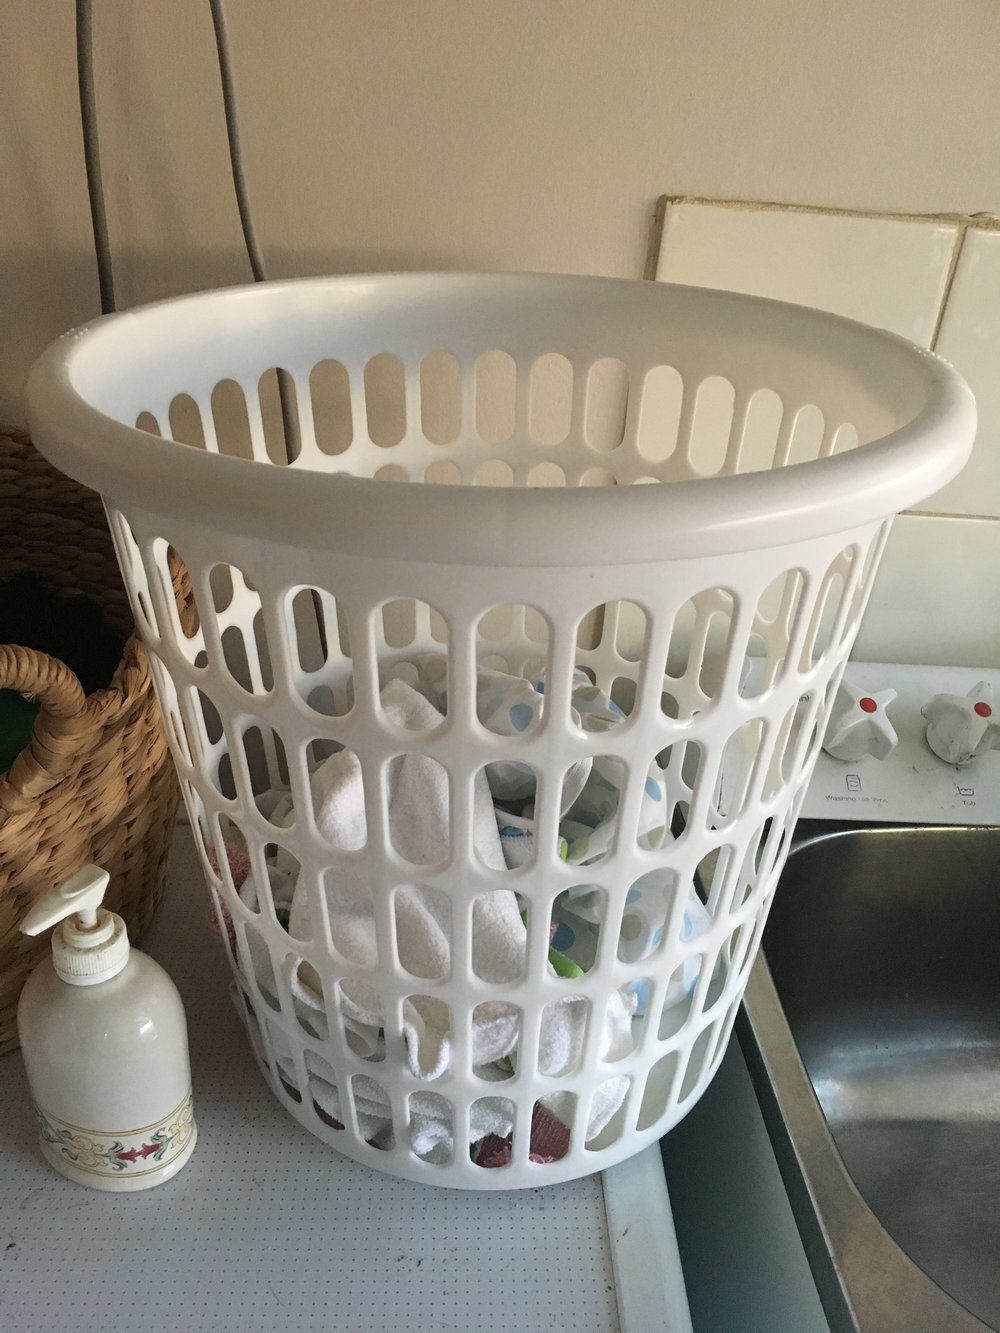 Our laundry basket: we store our cloth nappies in a separate  basket to keep our other washing clean